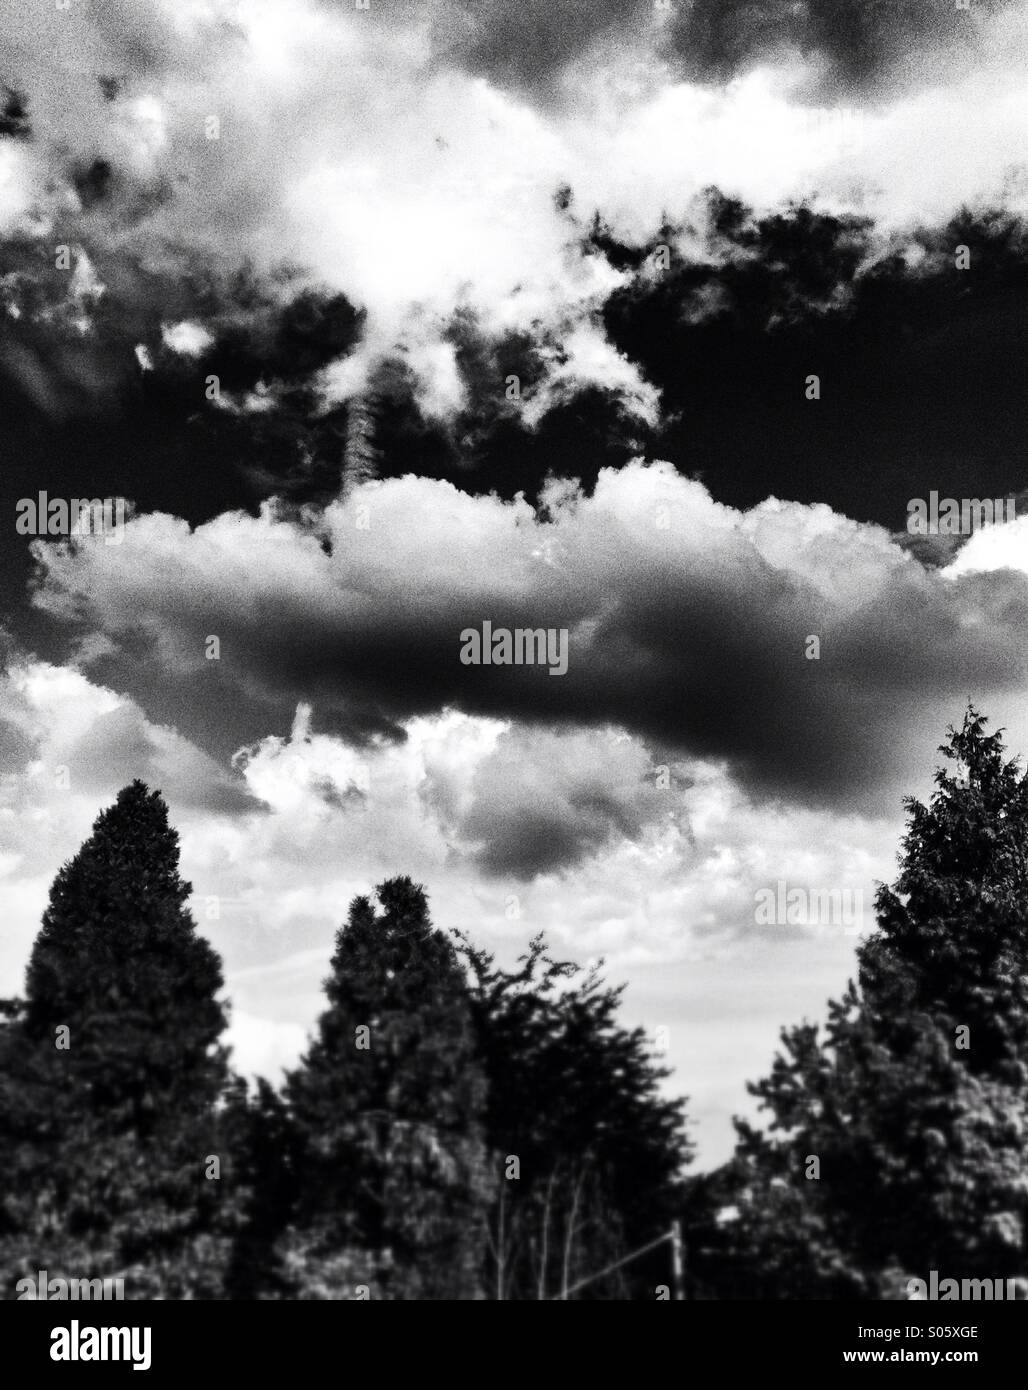 black and white cloudy sky - Stock Image